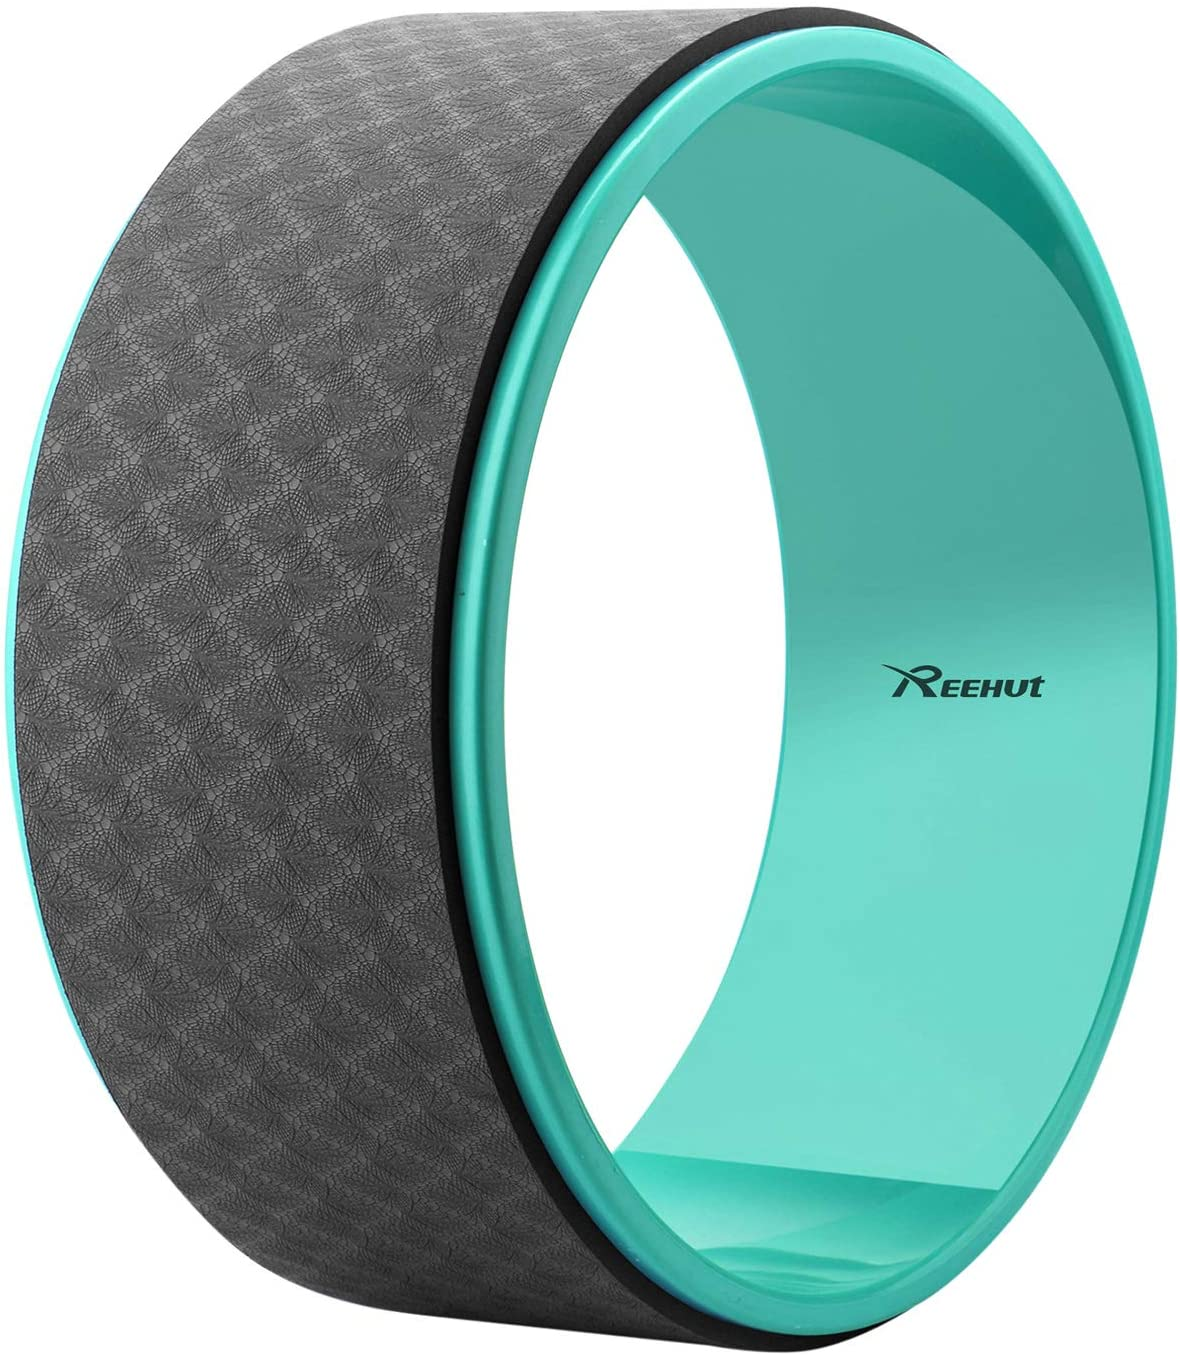 REEHUT Yoga Wheel for Back Pain - 12.6